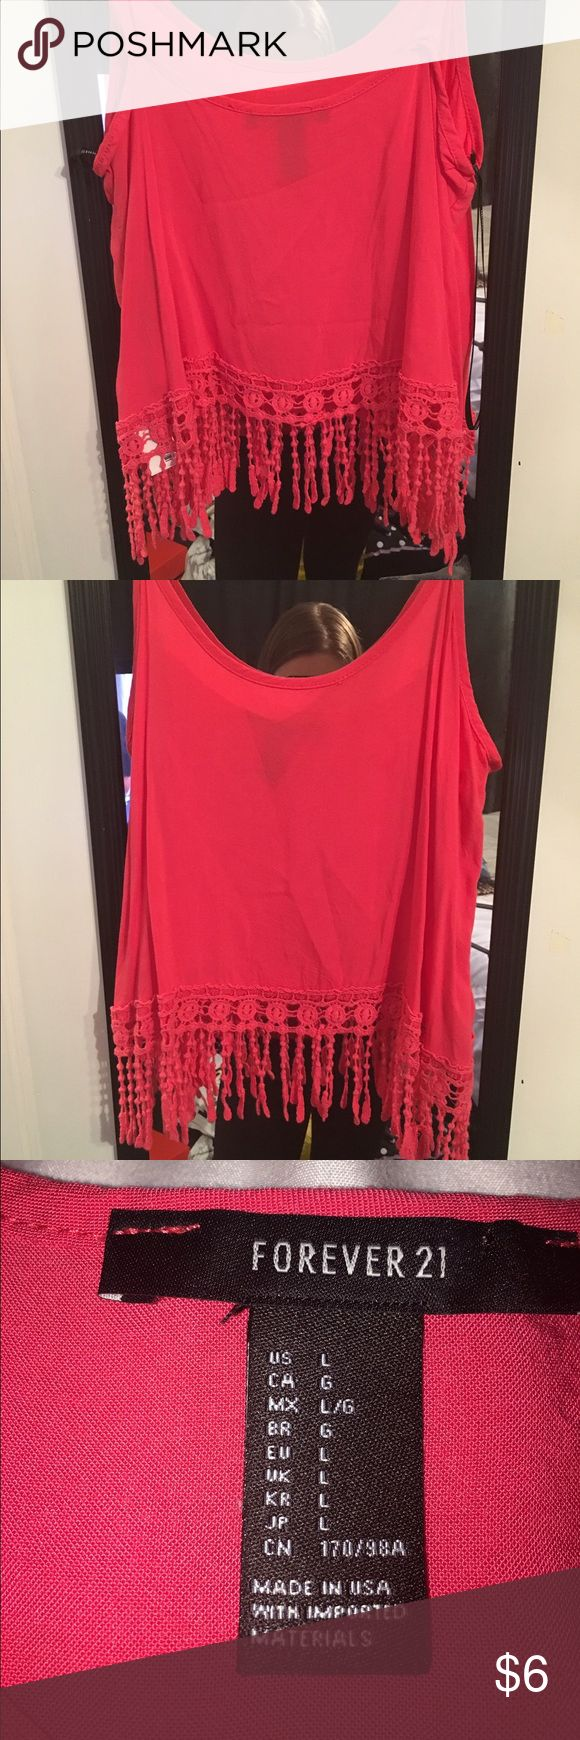 Hot pink tank top, lace At bottom Hot pink tank top, cotton fabric. Thin spaghetti straps and lace fringe at bottom! Forever 21 Tops Tank Tops